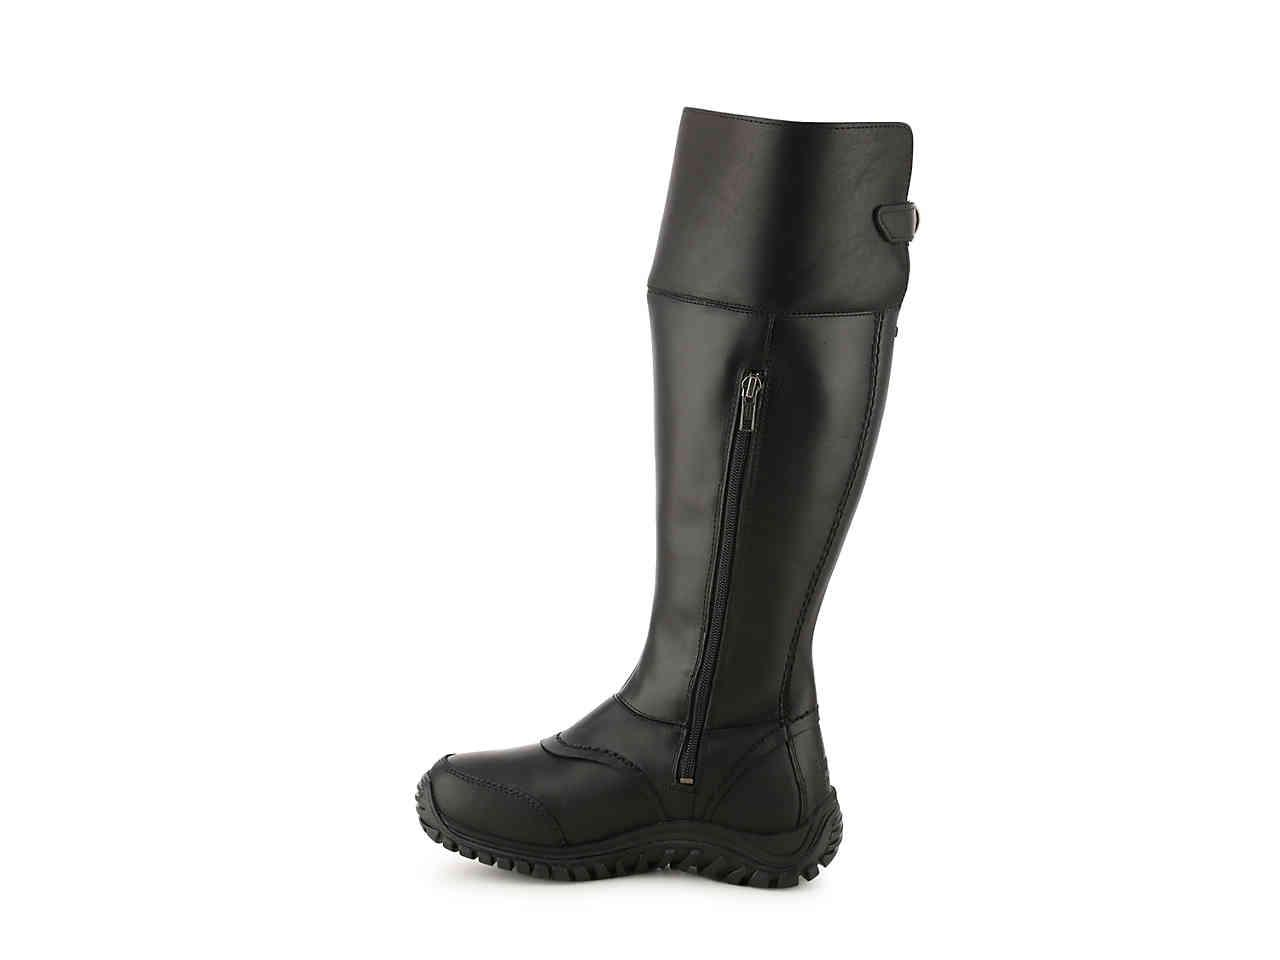 UGG Leather Miko Snow Boot in Black - Lyst